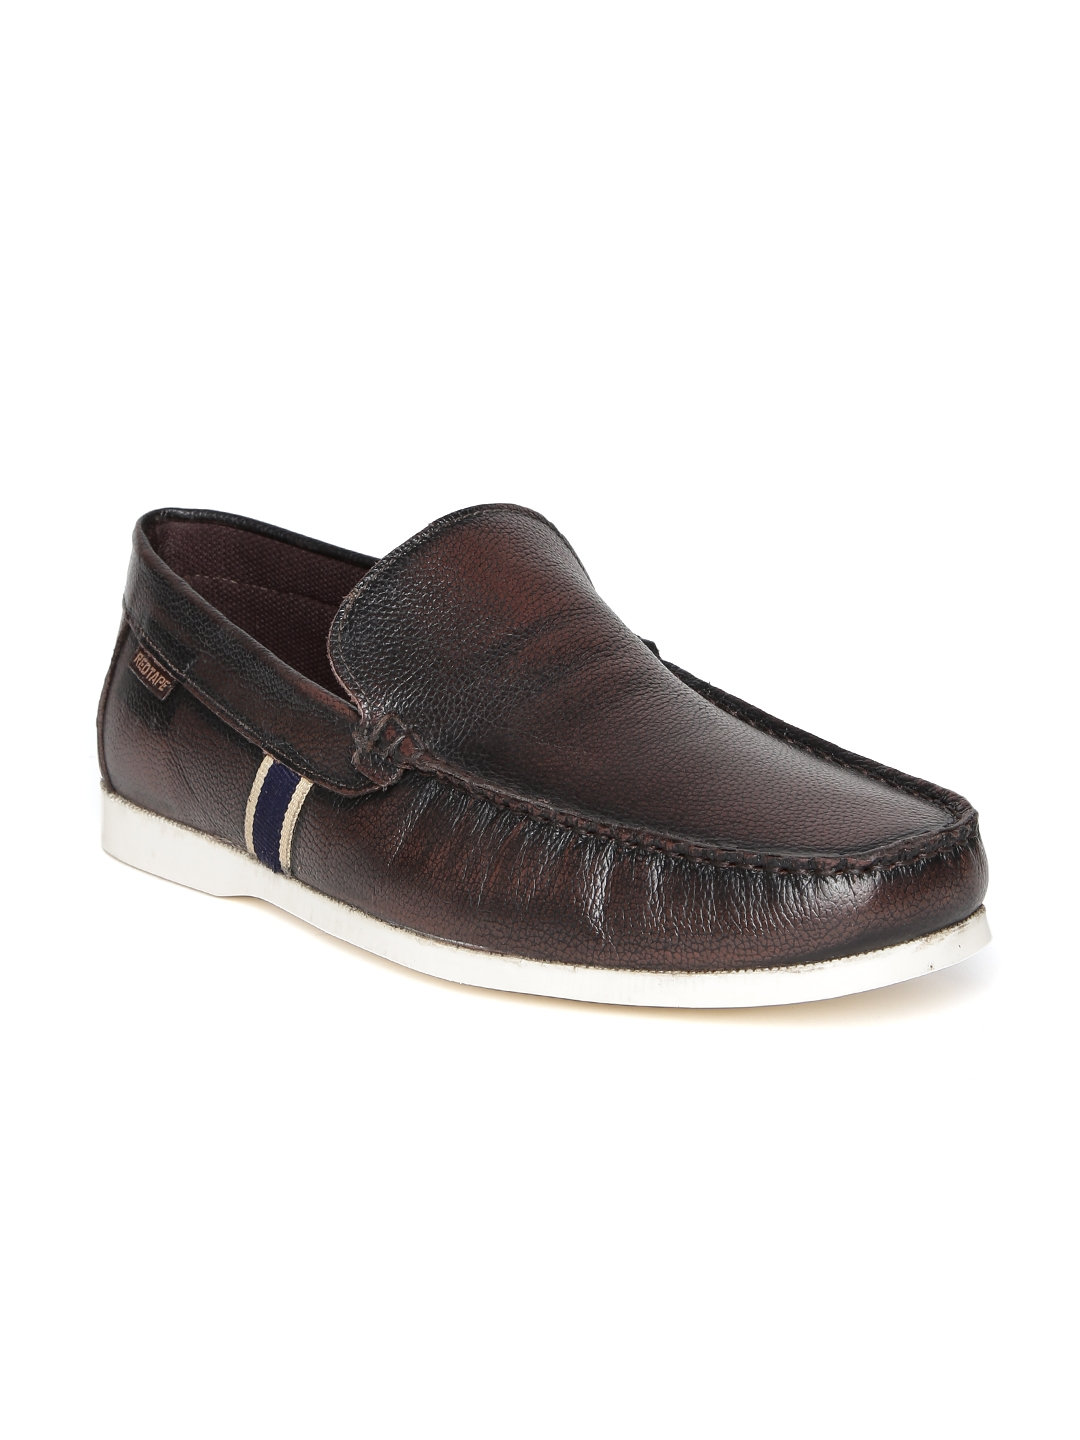 d89a8d2132 Buy Red Tape Men Coffee Brown Solid Leather Regular Loafers - Casual ...